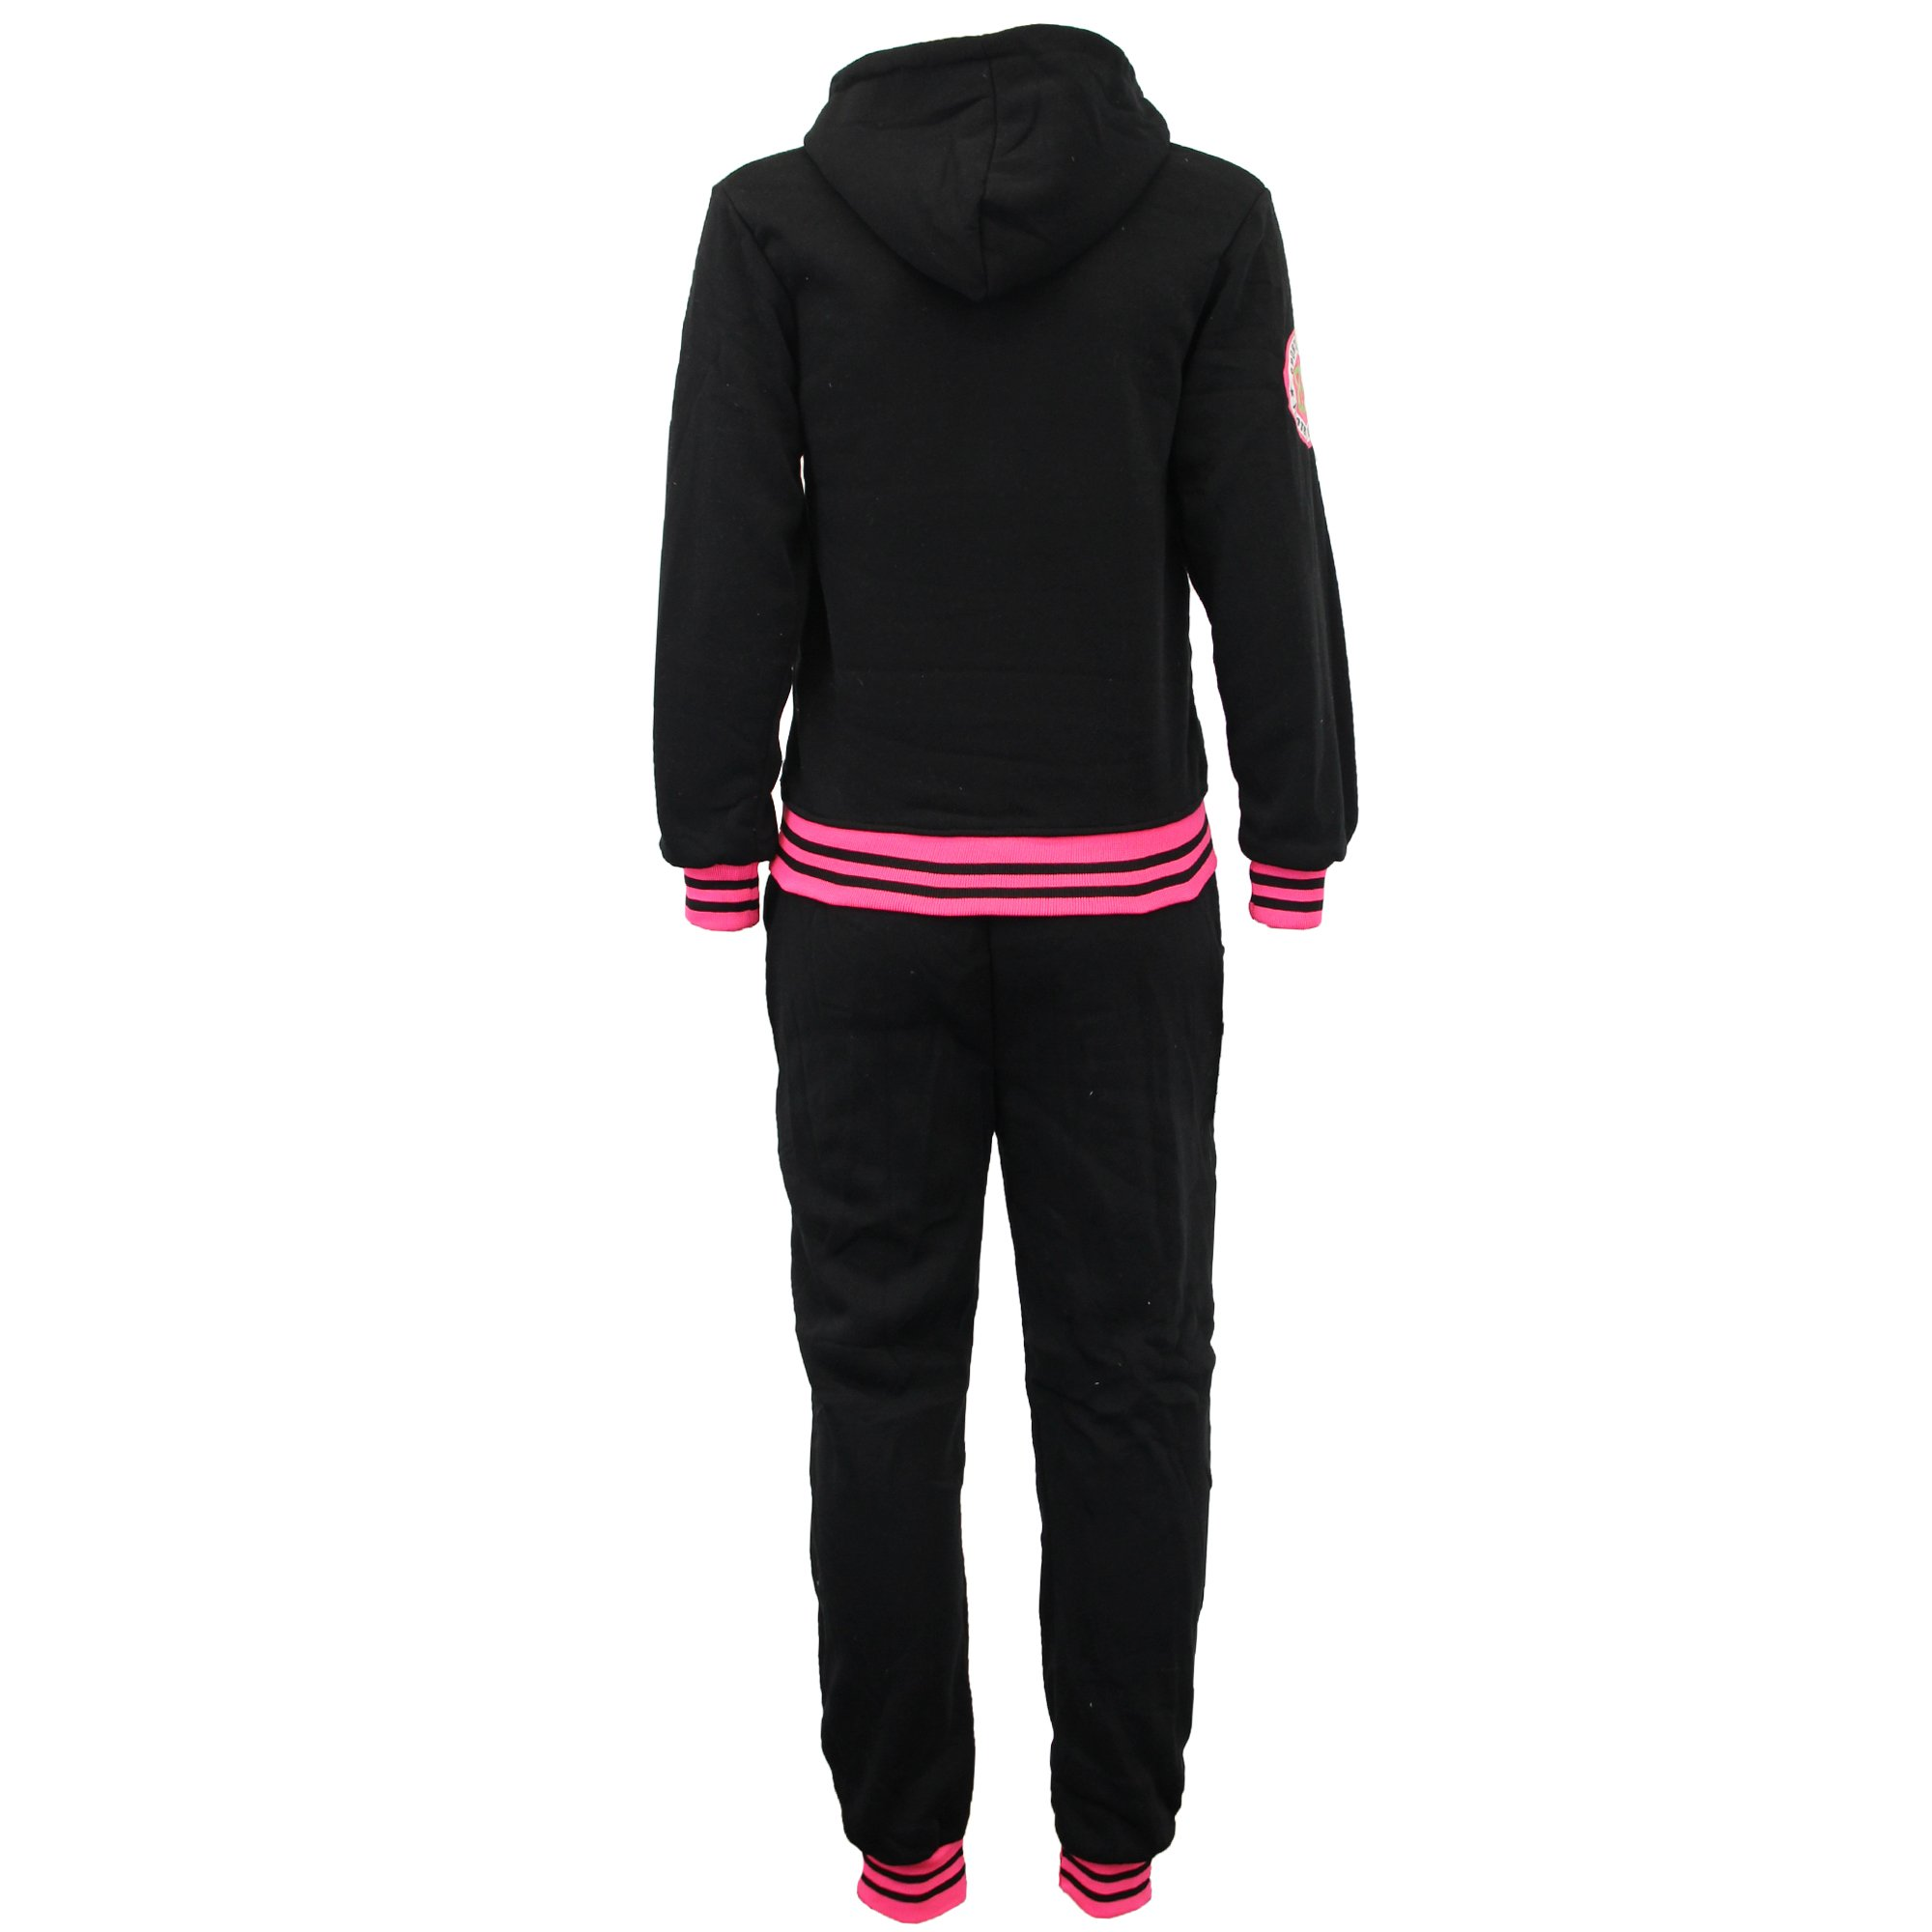 Boys' Tracksuit C73 Black/Fuchsia Size 14 10/11 Years by Unknown (Image #3)